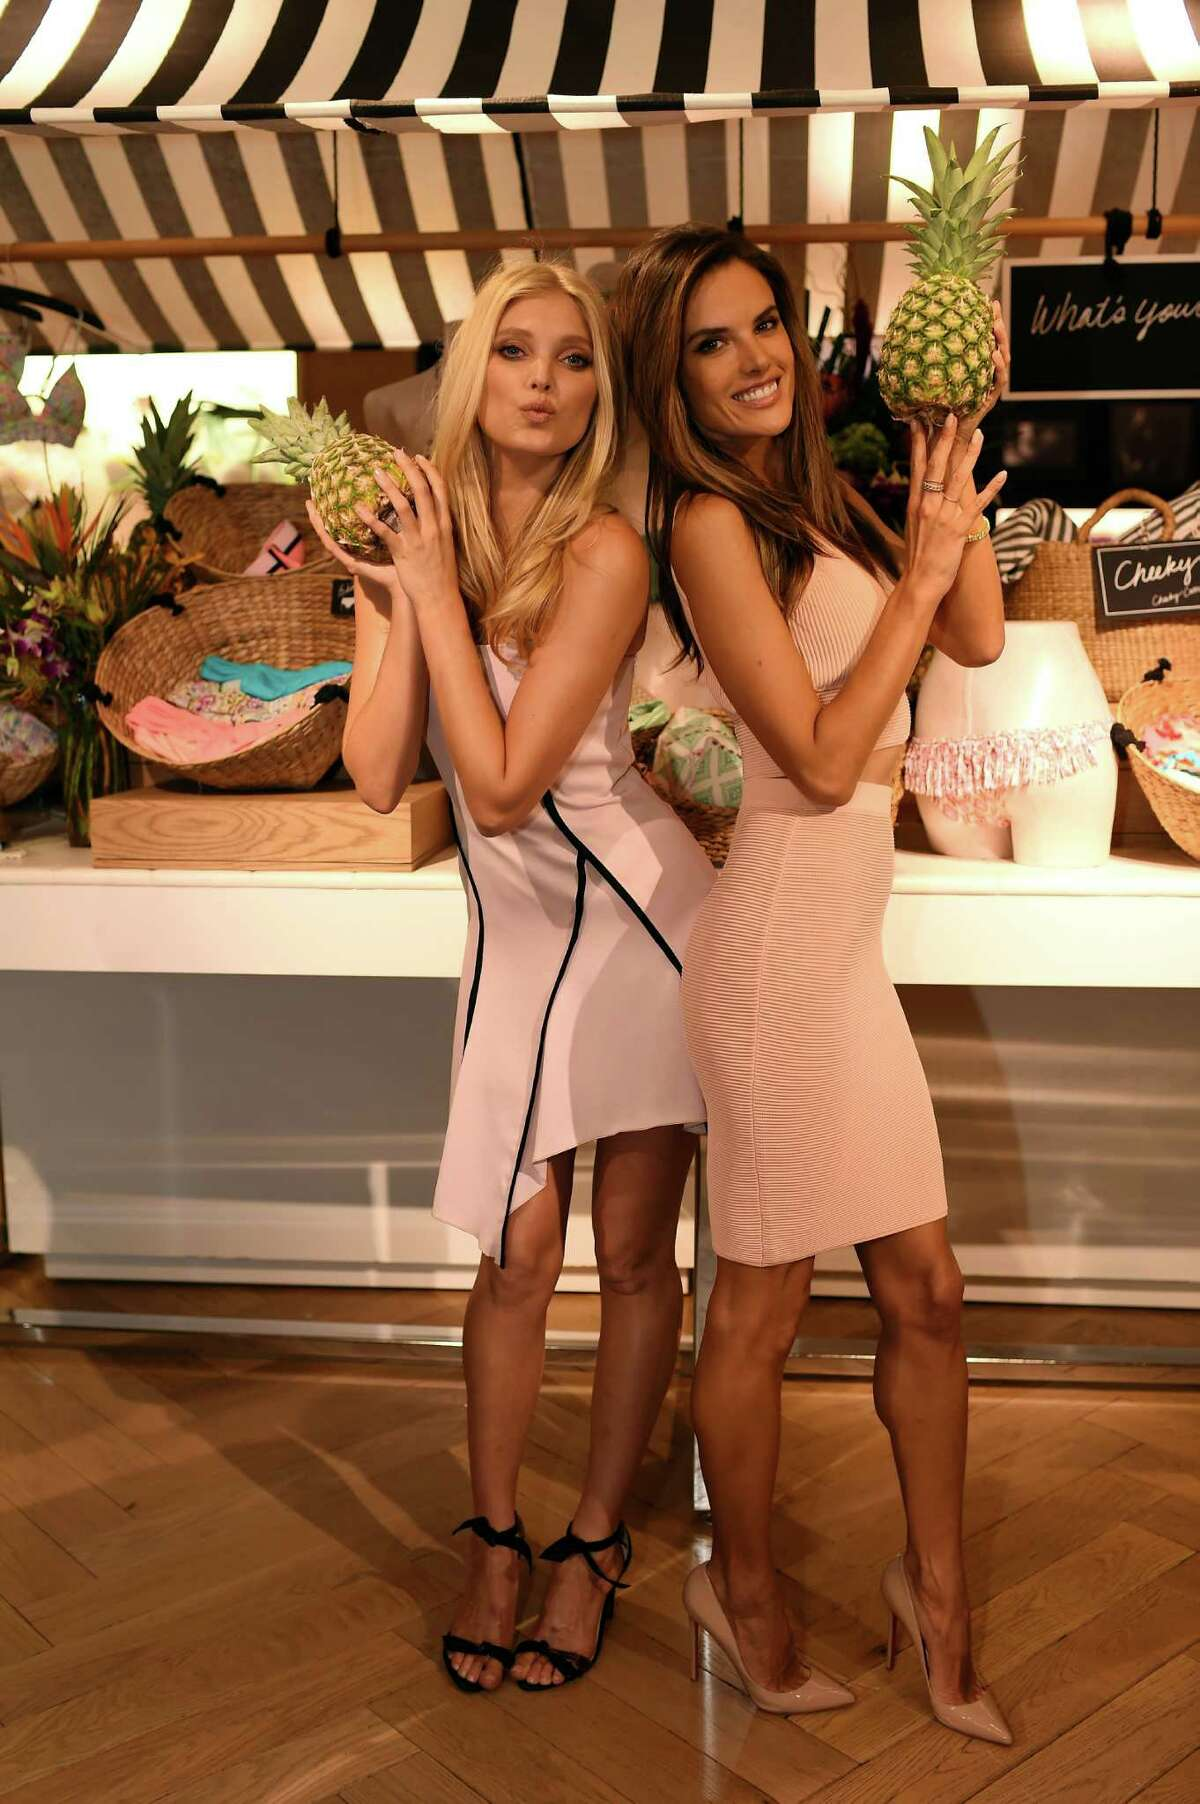 Victoria's Secret Angels Elsa Hosk (L) and Alessandra Ambrosio celebrate the sexiest Push-ups and The Victoria's Secret Swim Special at Victoria's Secret Herald Square on February 25, 2015 in New York City.